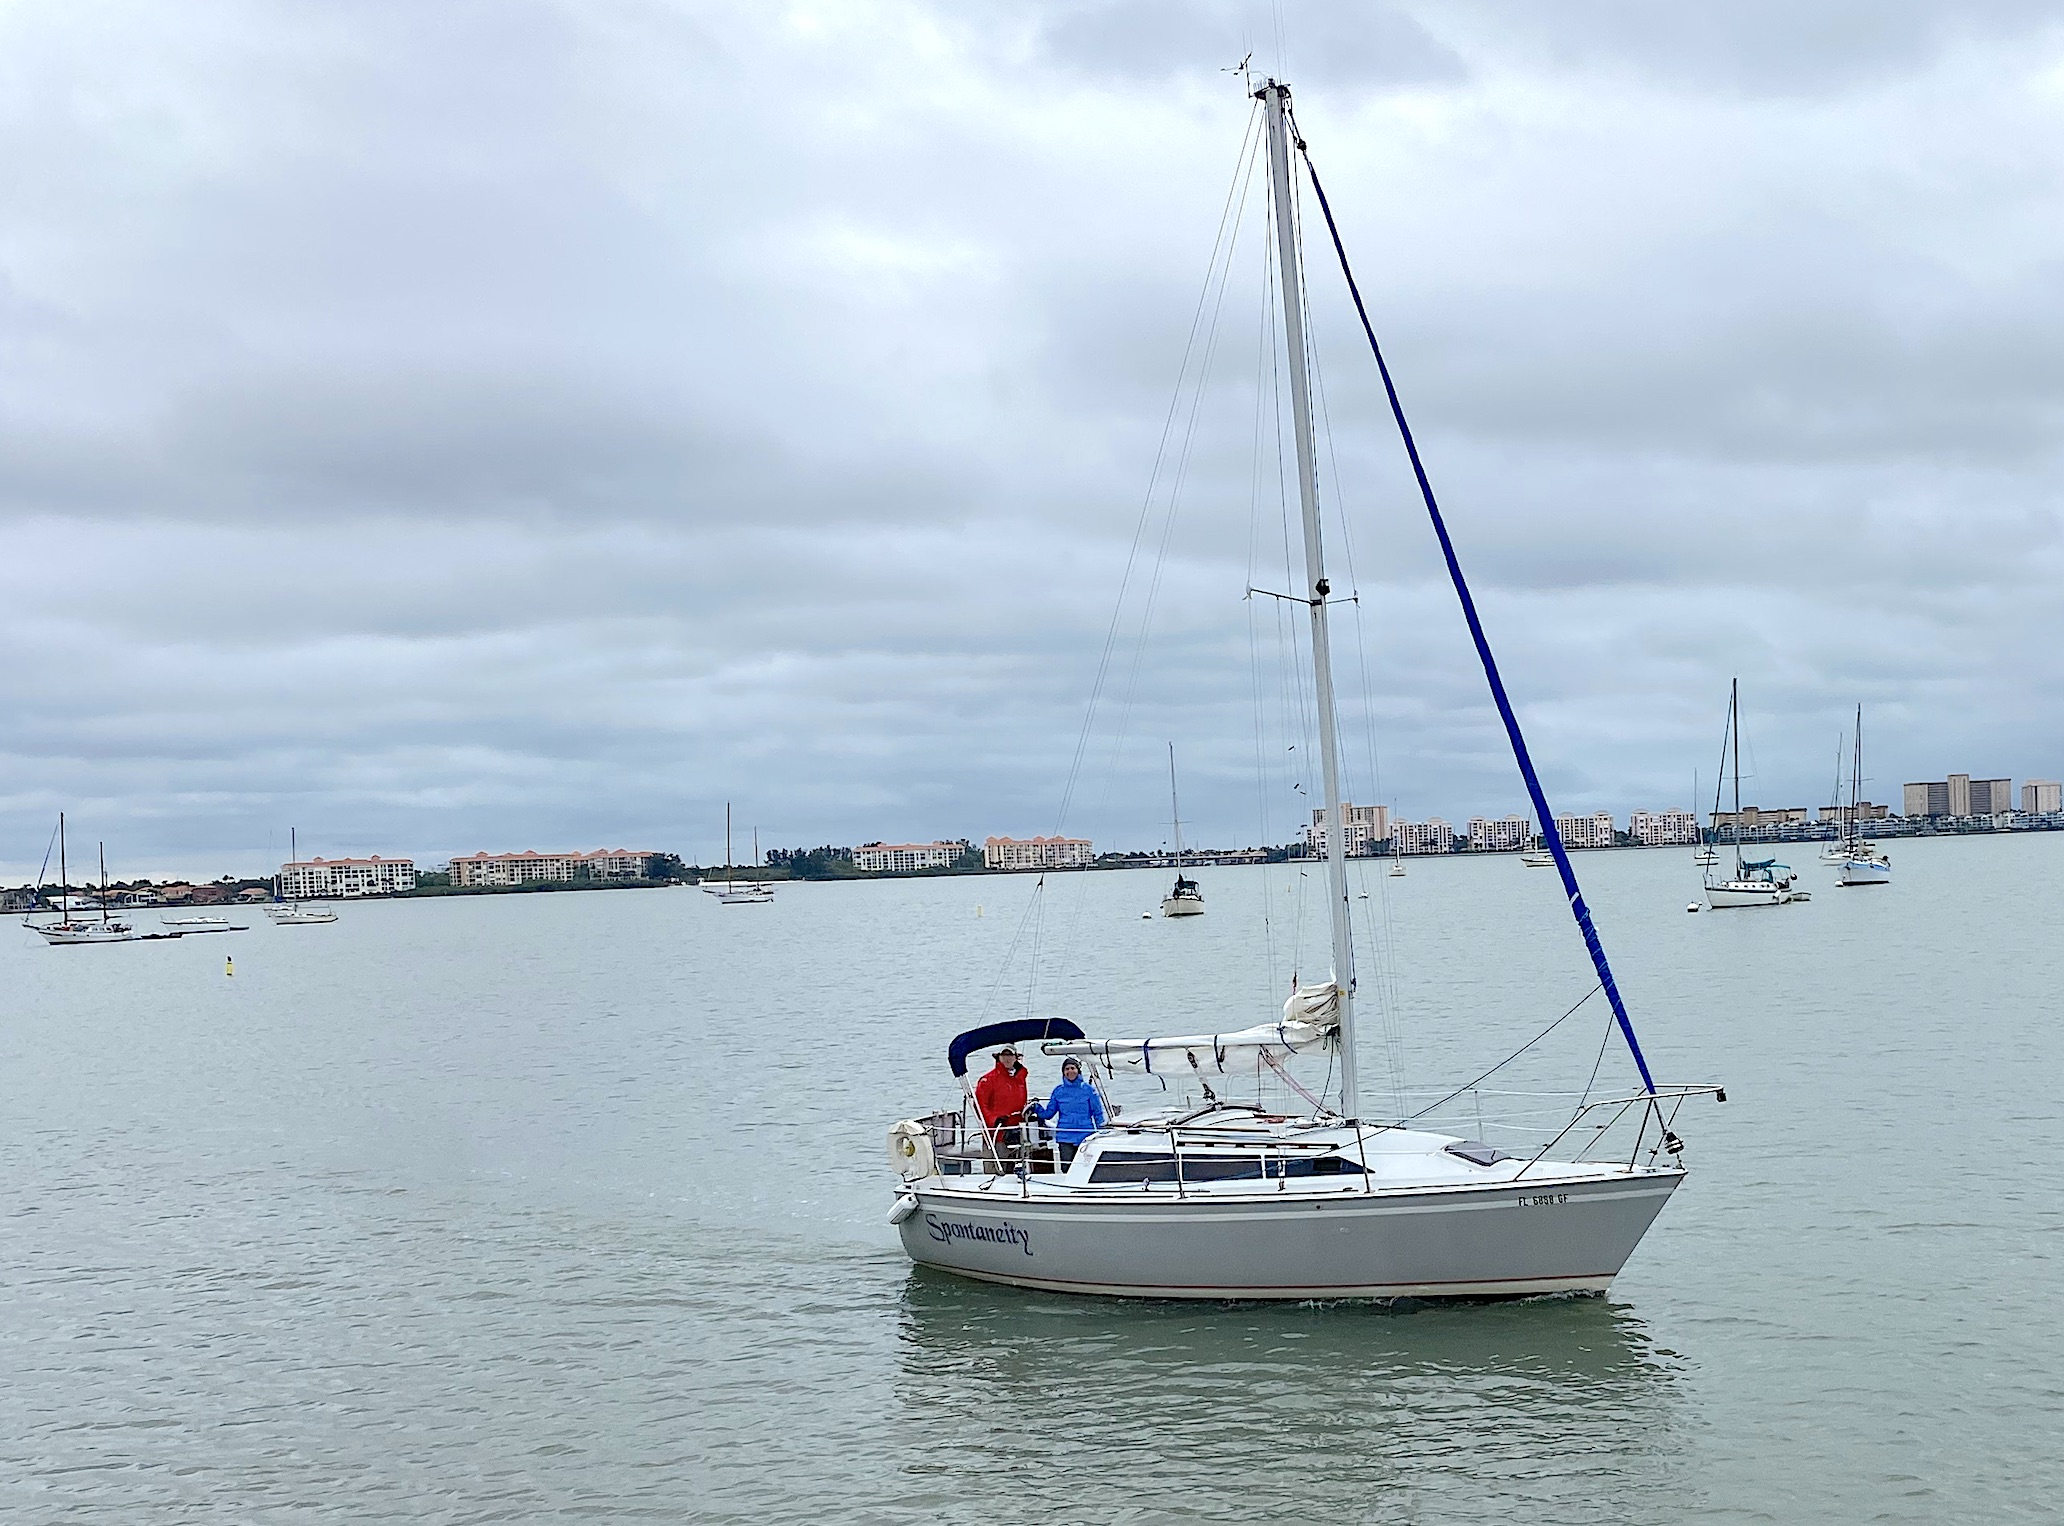 A Boat in a by on an overcast day